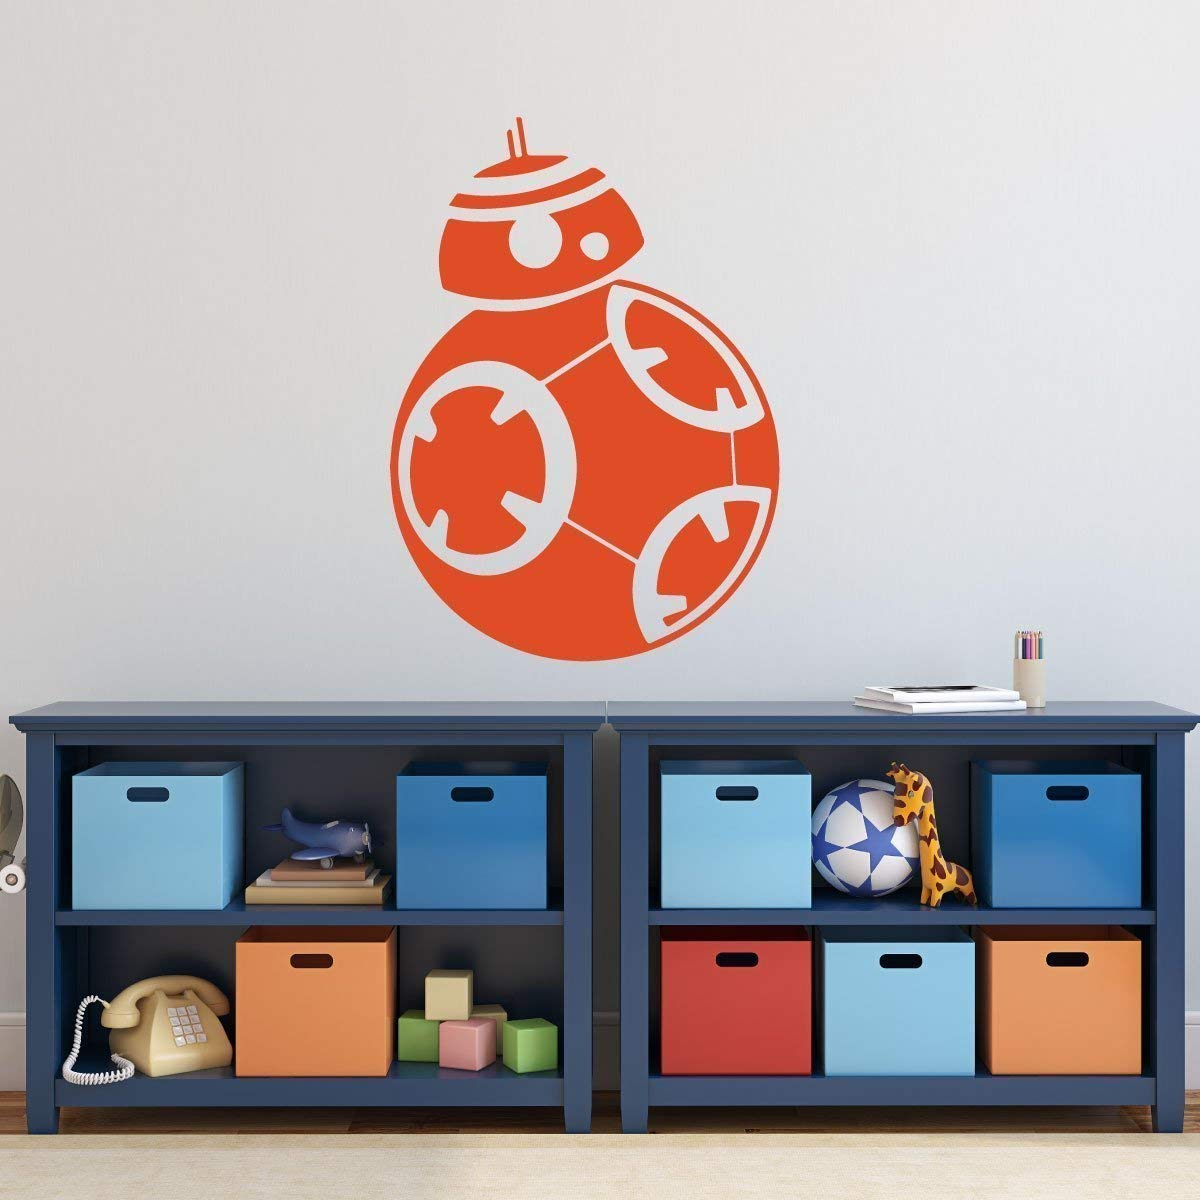 Custom star wars bb8 wall decal personalized name vinyl sticker decor for kids bedroom playroom baby nursery preschool classroom black white blue